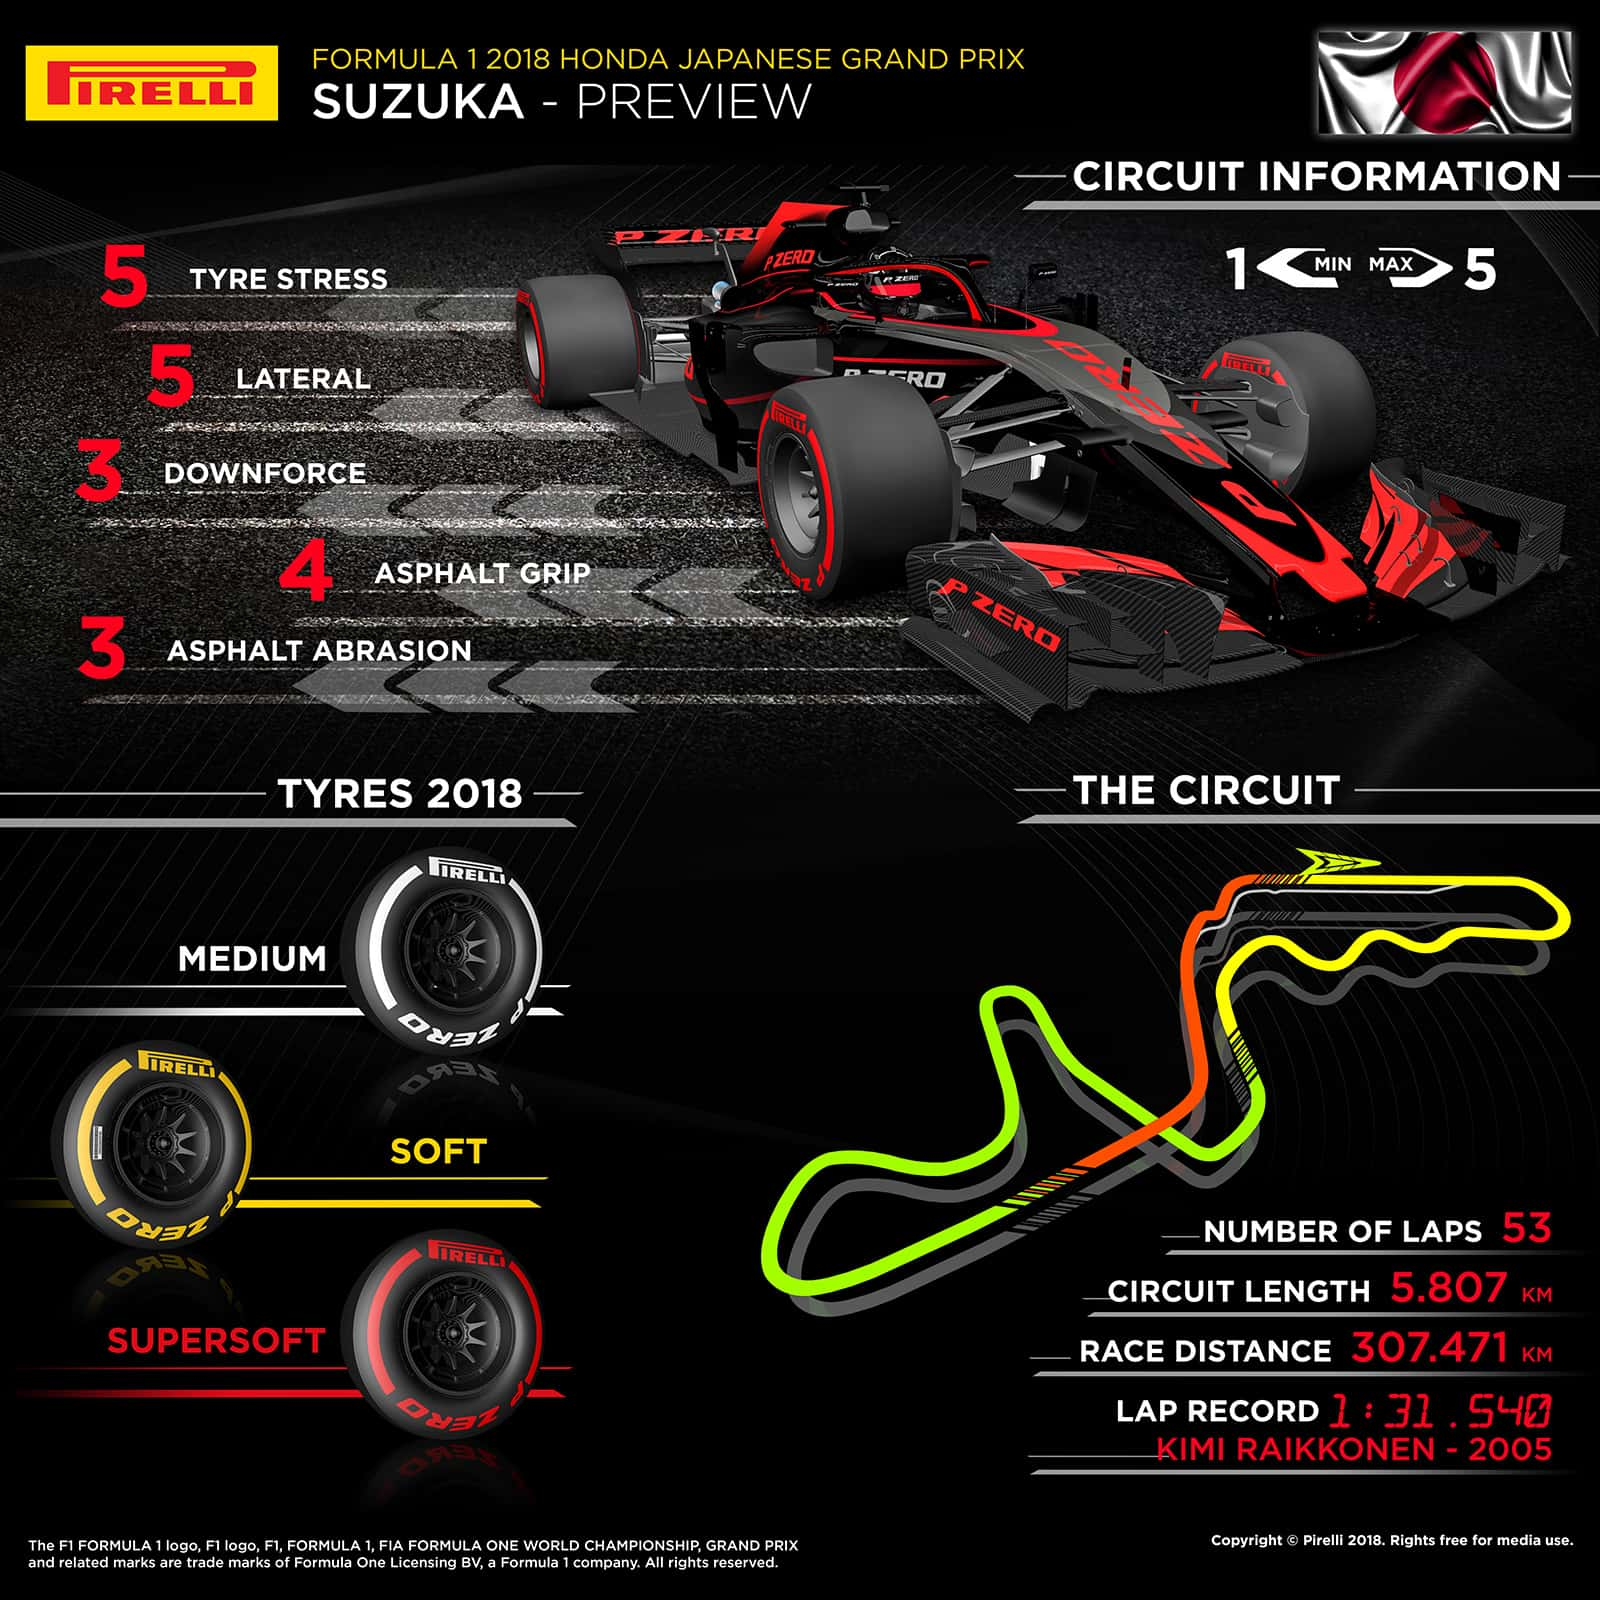 Suzuka: big corners and high energy